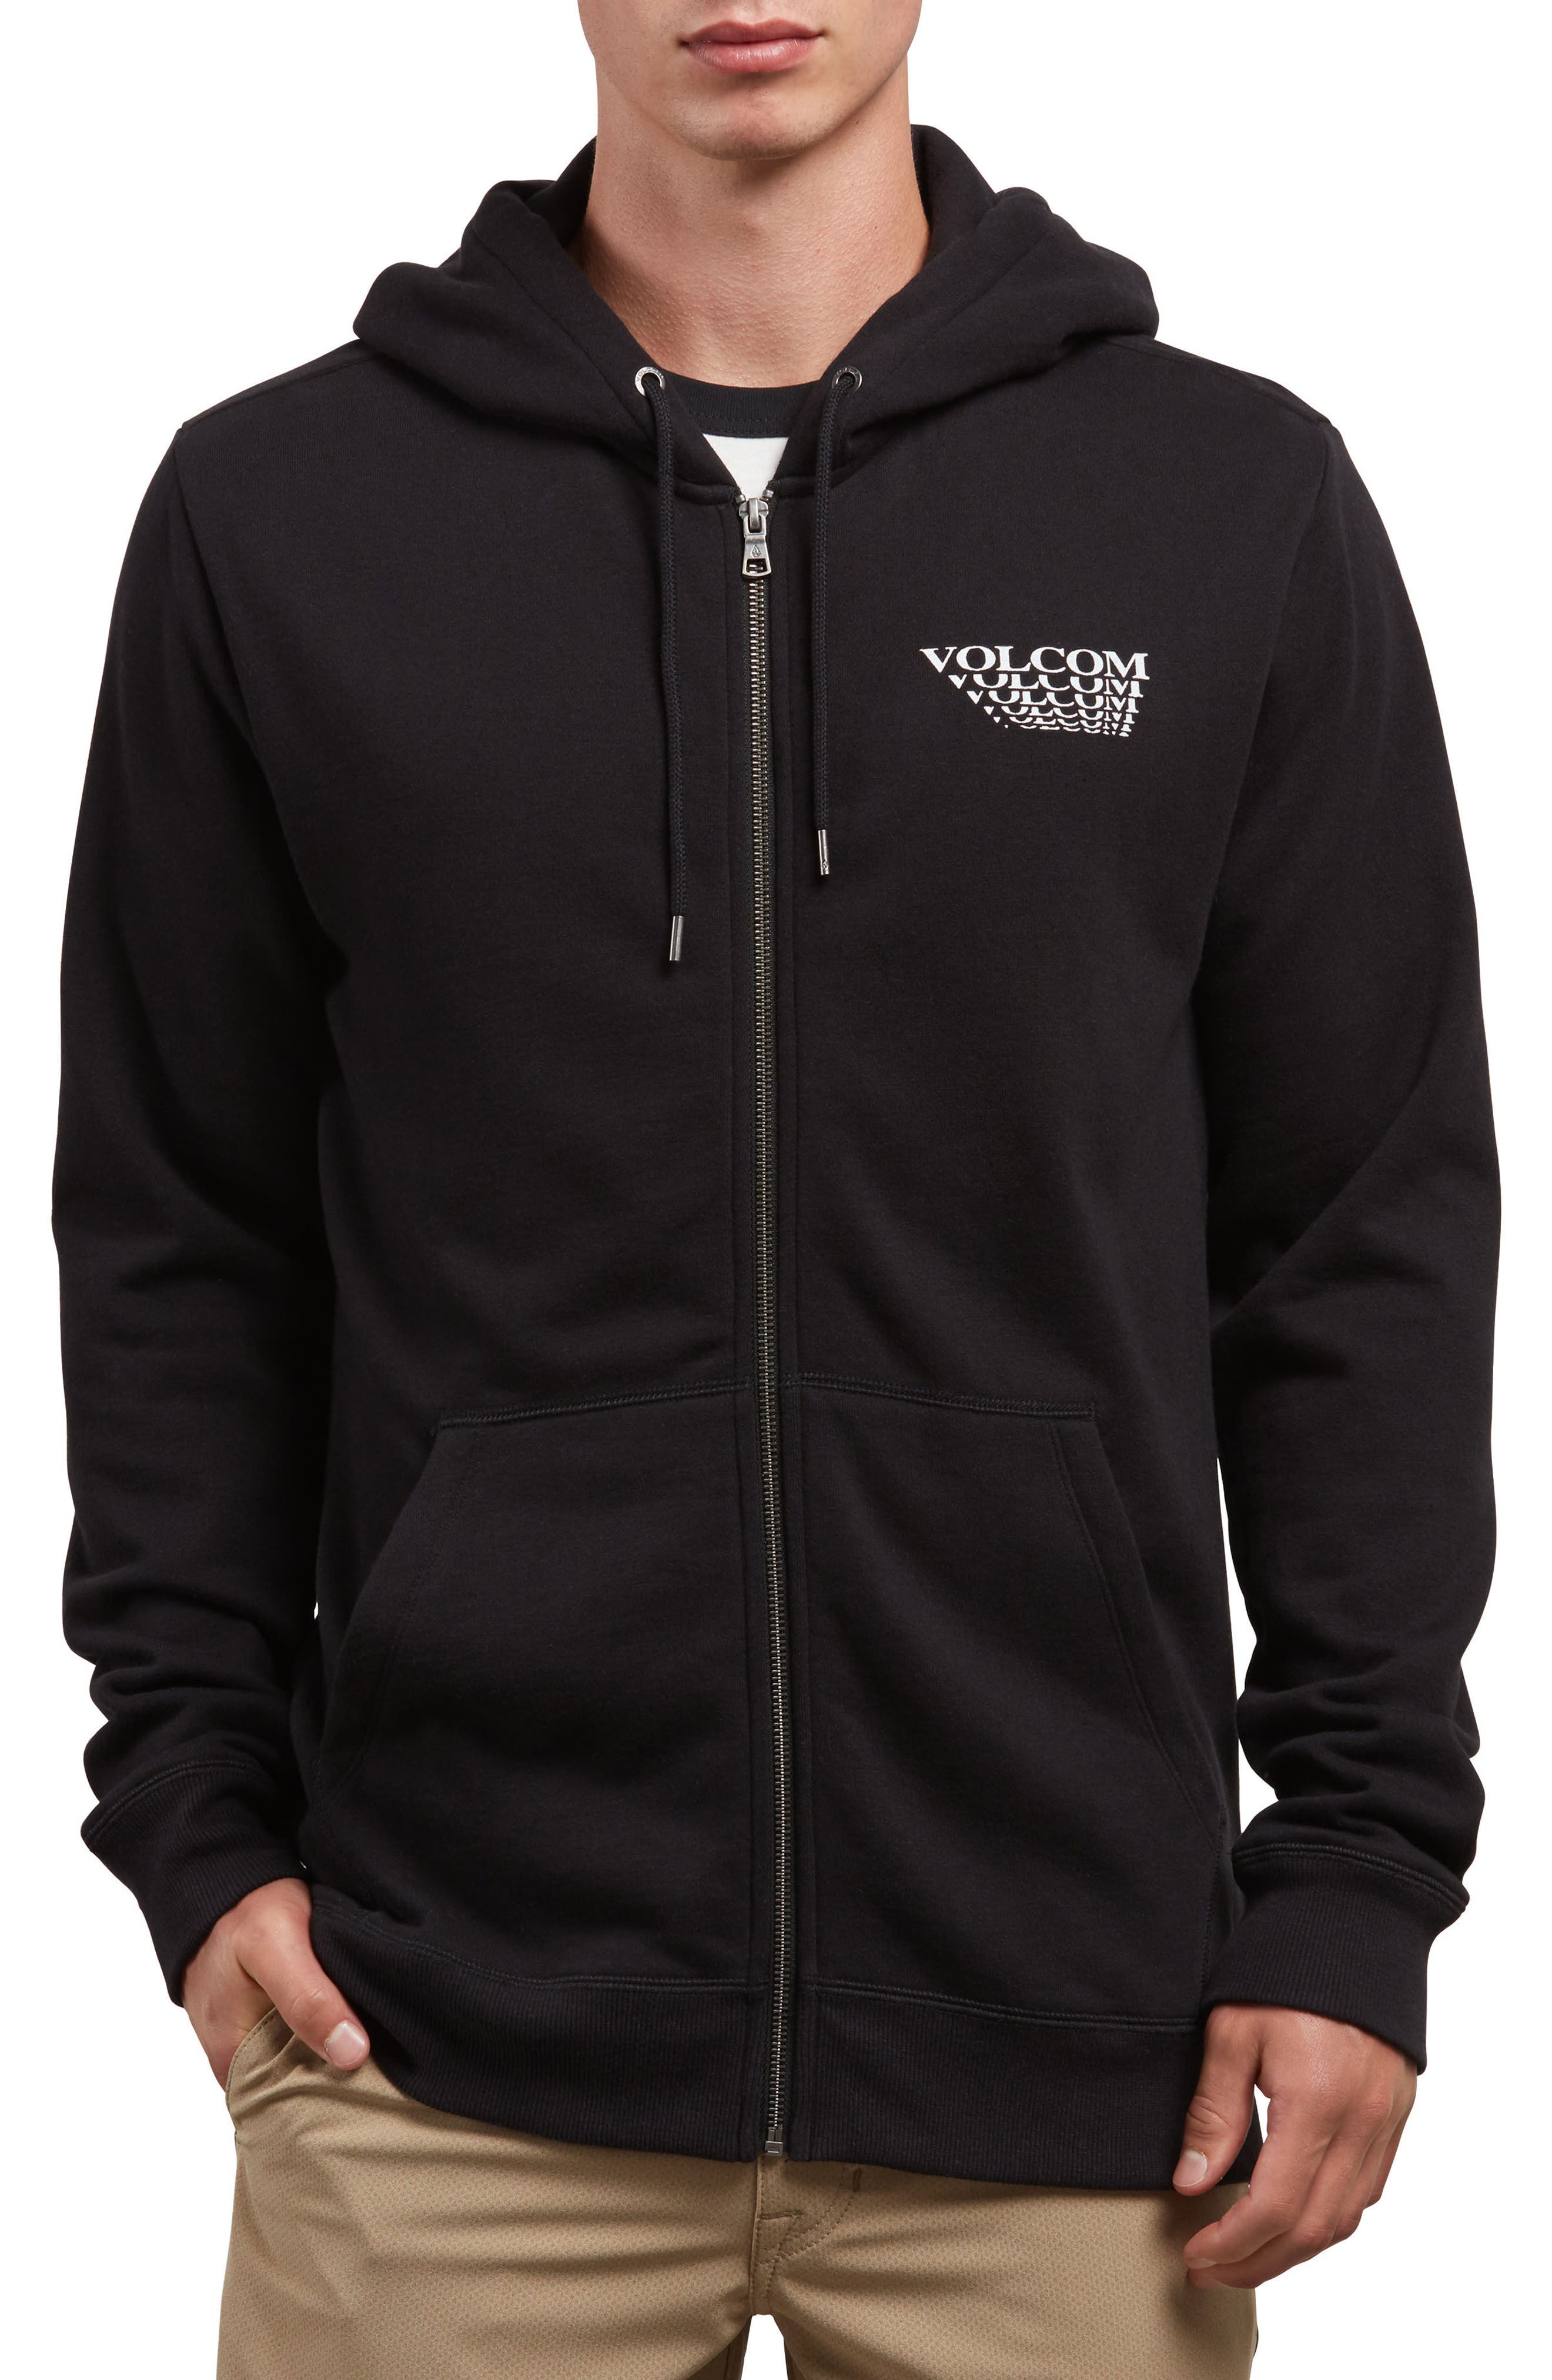 Reload Graphic Hoodie,                         Main,                         color, Black